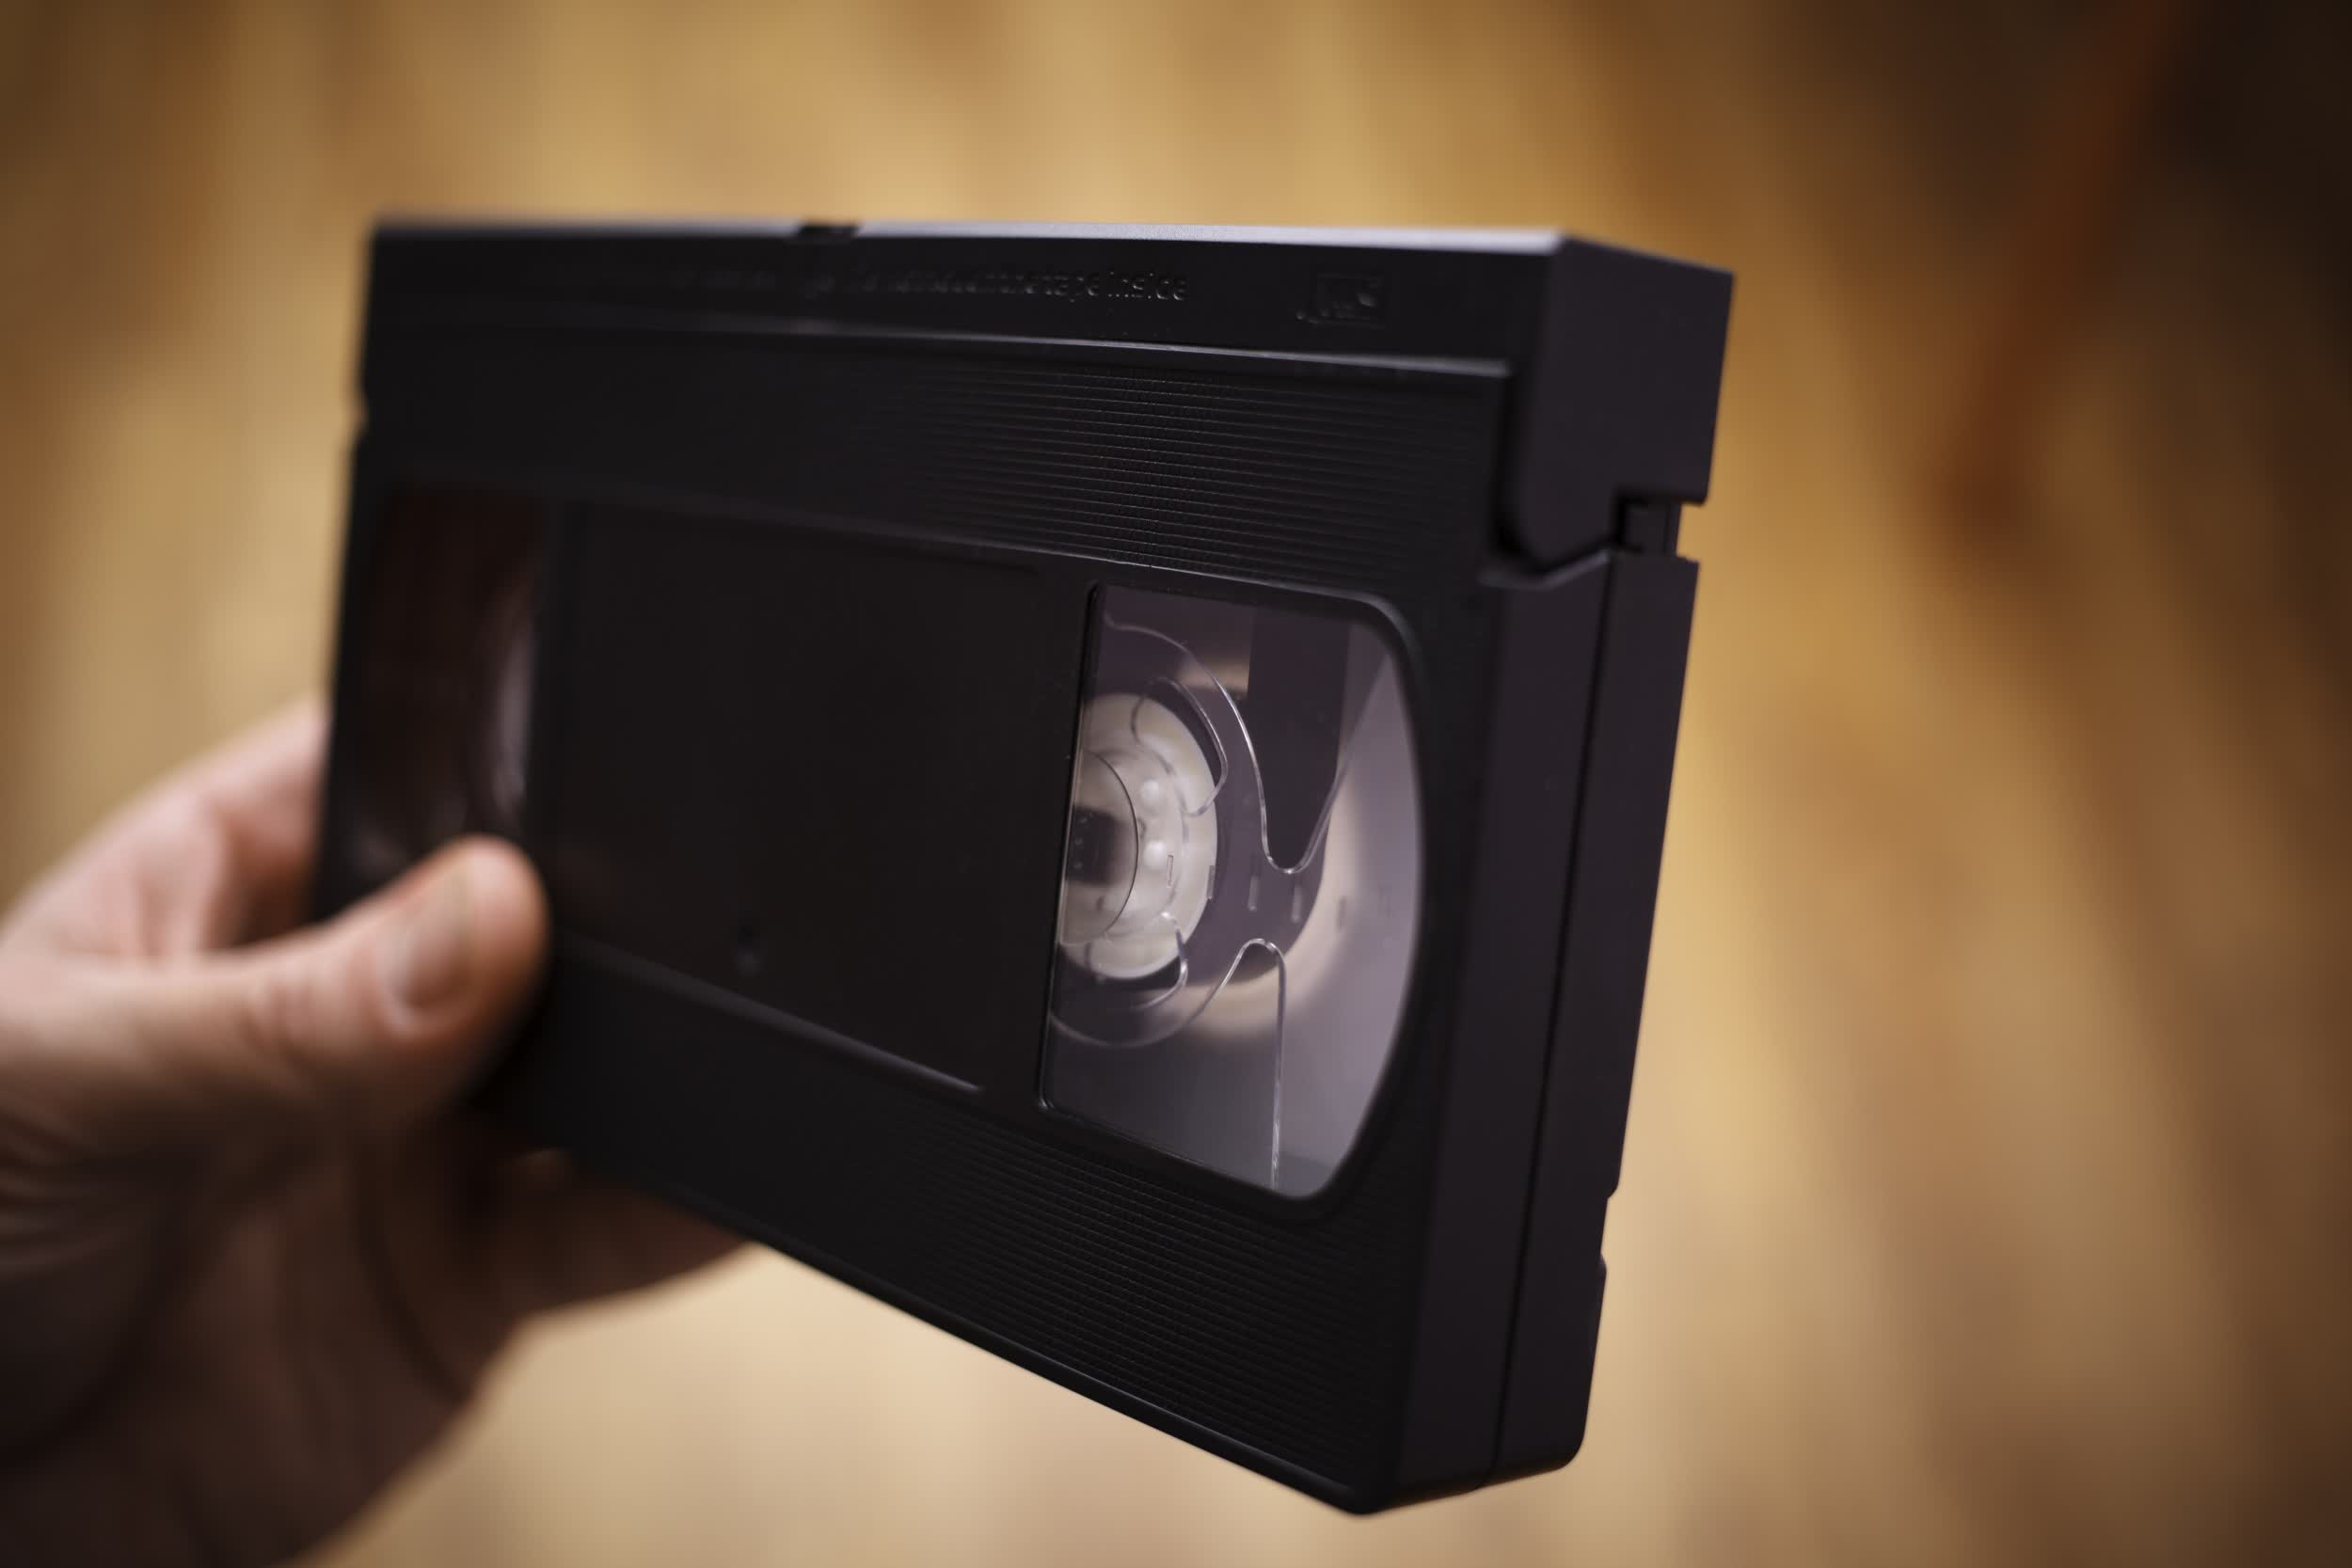 Oklahoma woman was charged with a felony for not returning a VHS rental two decades ago